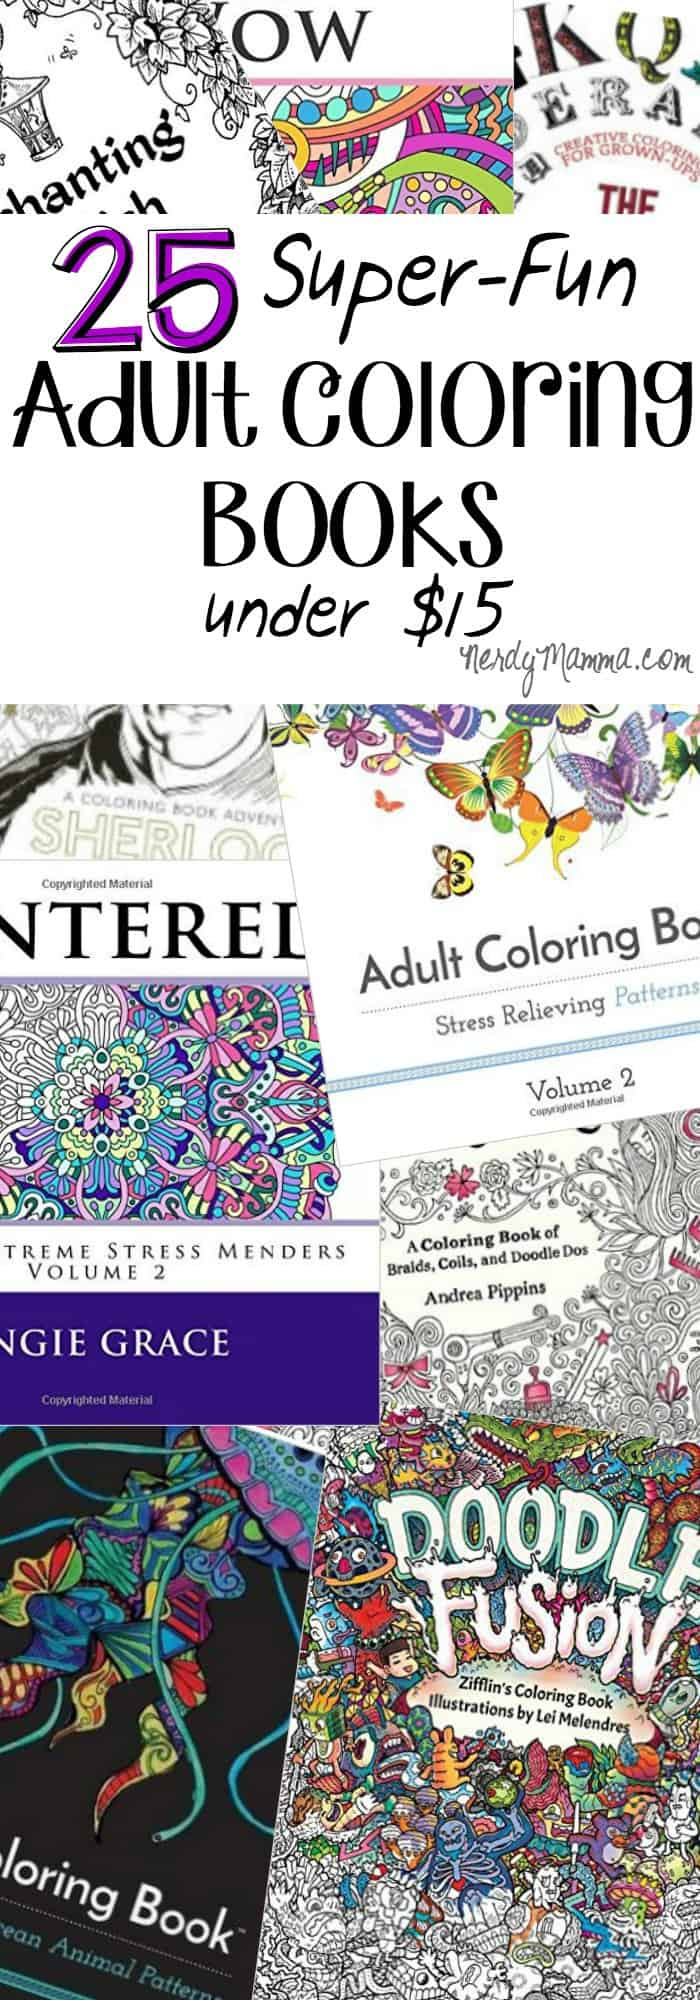 I love these 25 Super-Fun Adult Coloring Books. And they're all under $15. So awesome!